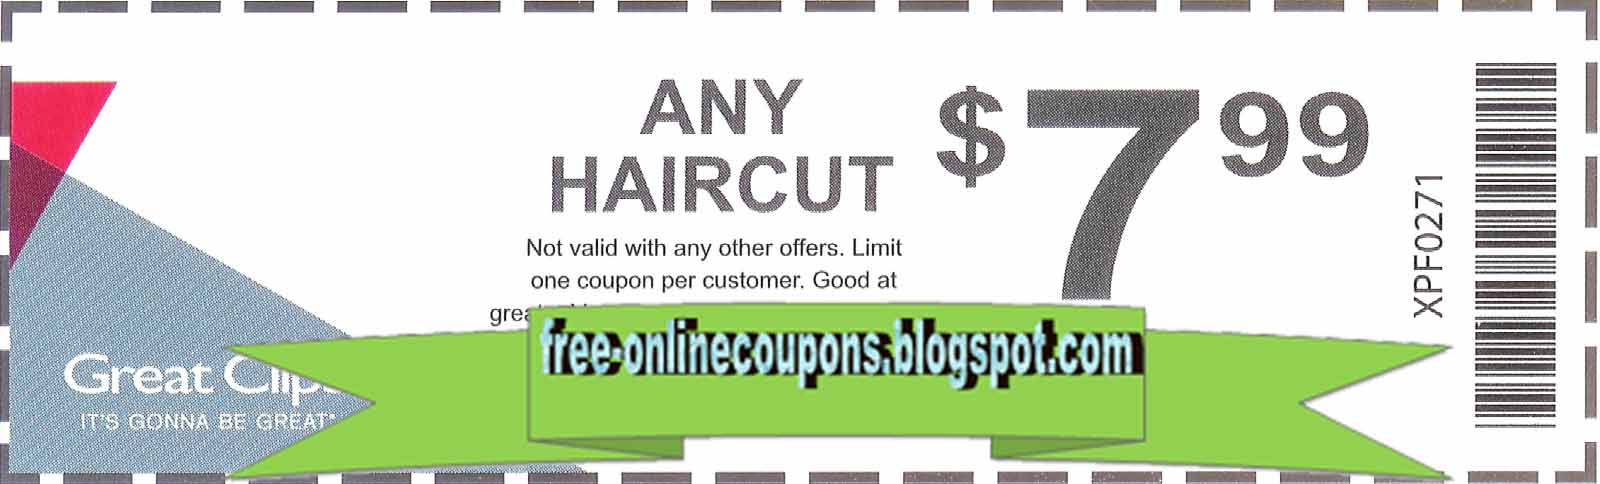 GREATCLIPS COUPON 2019